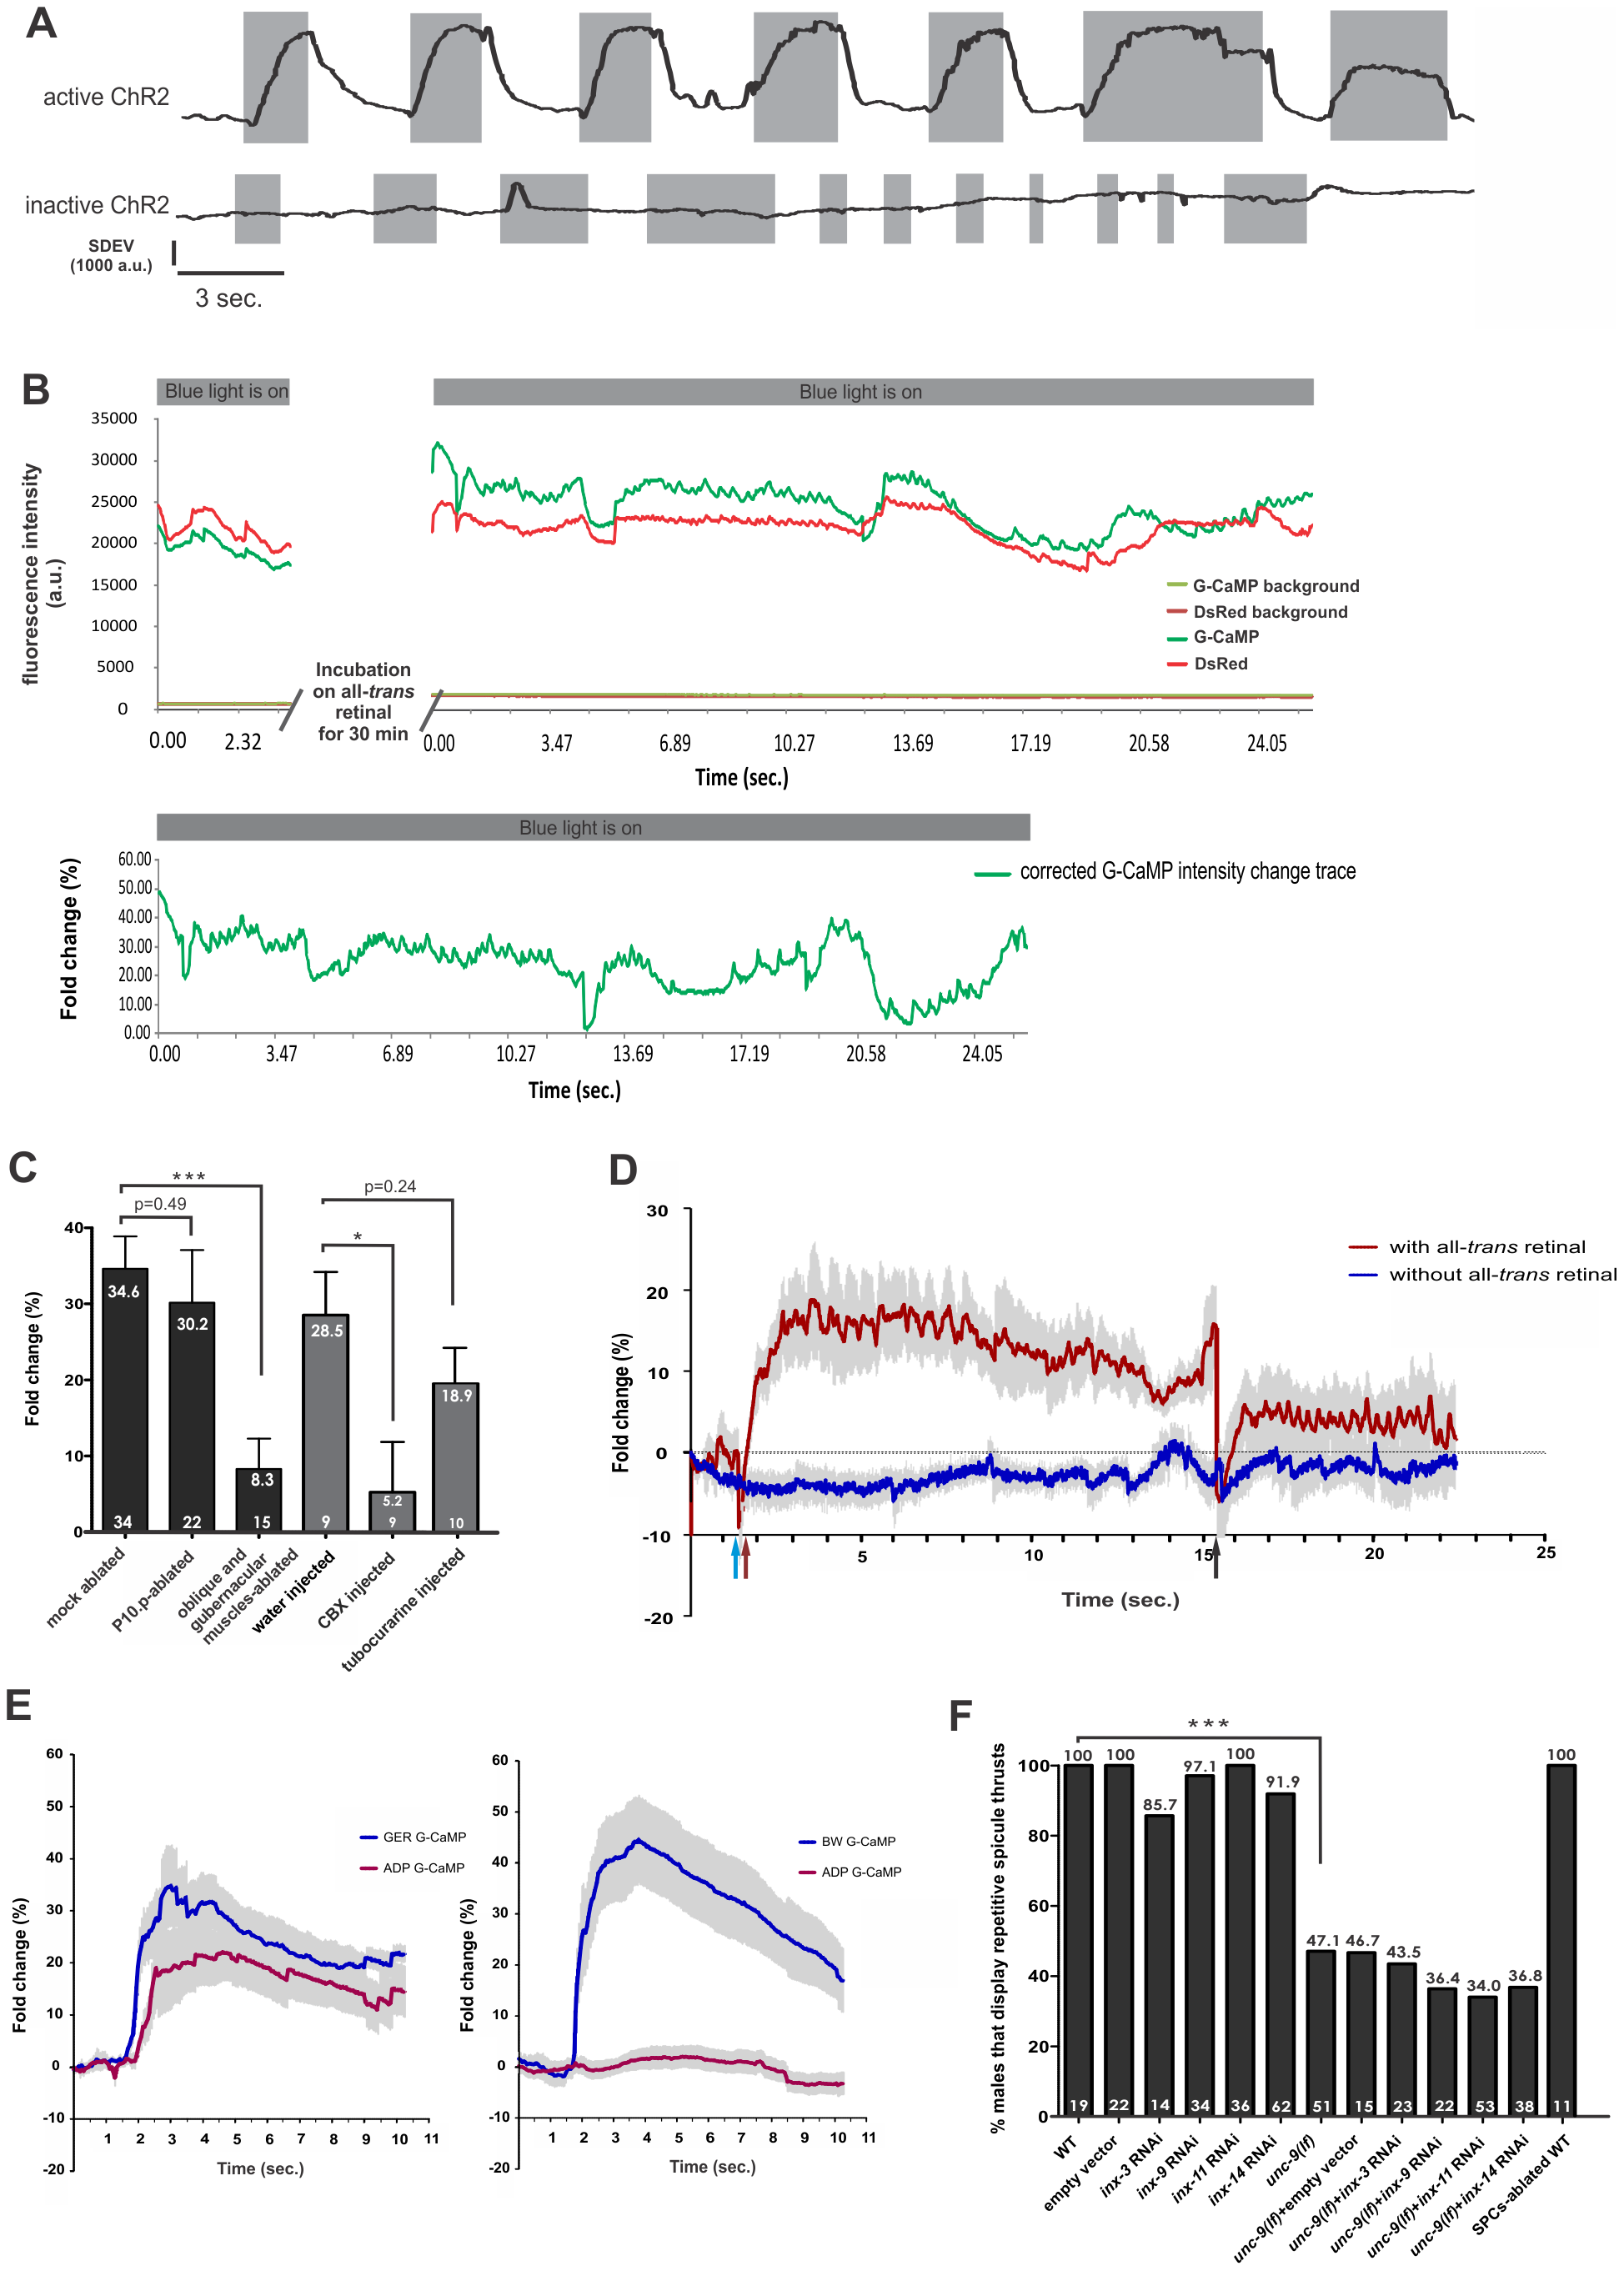 Stimulation of the gubernacular-oblique muscle group induces repetitive spicule thrusts and Ca<sup>2+</sup> transients in the spicule protractor-anal depressor muscles.